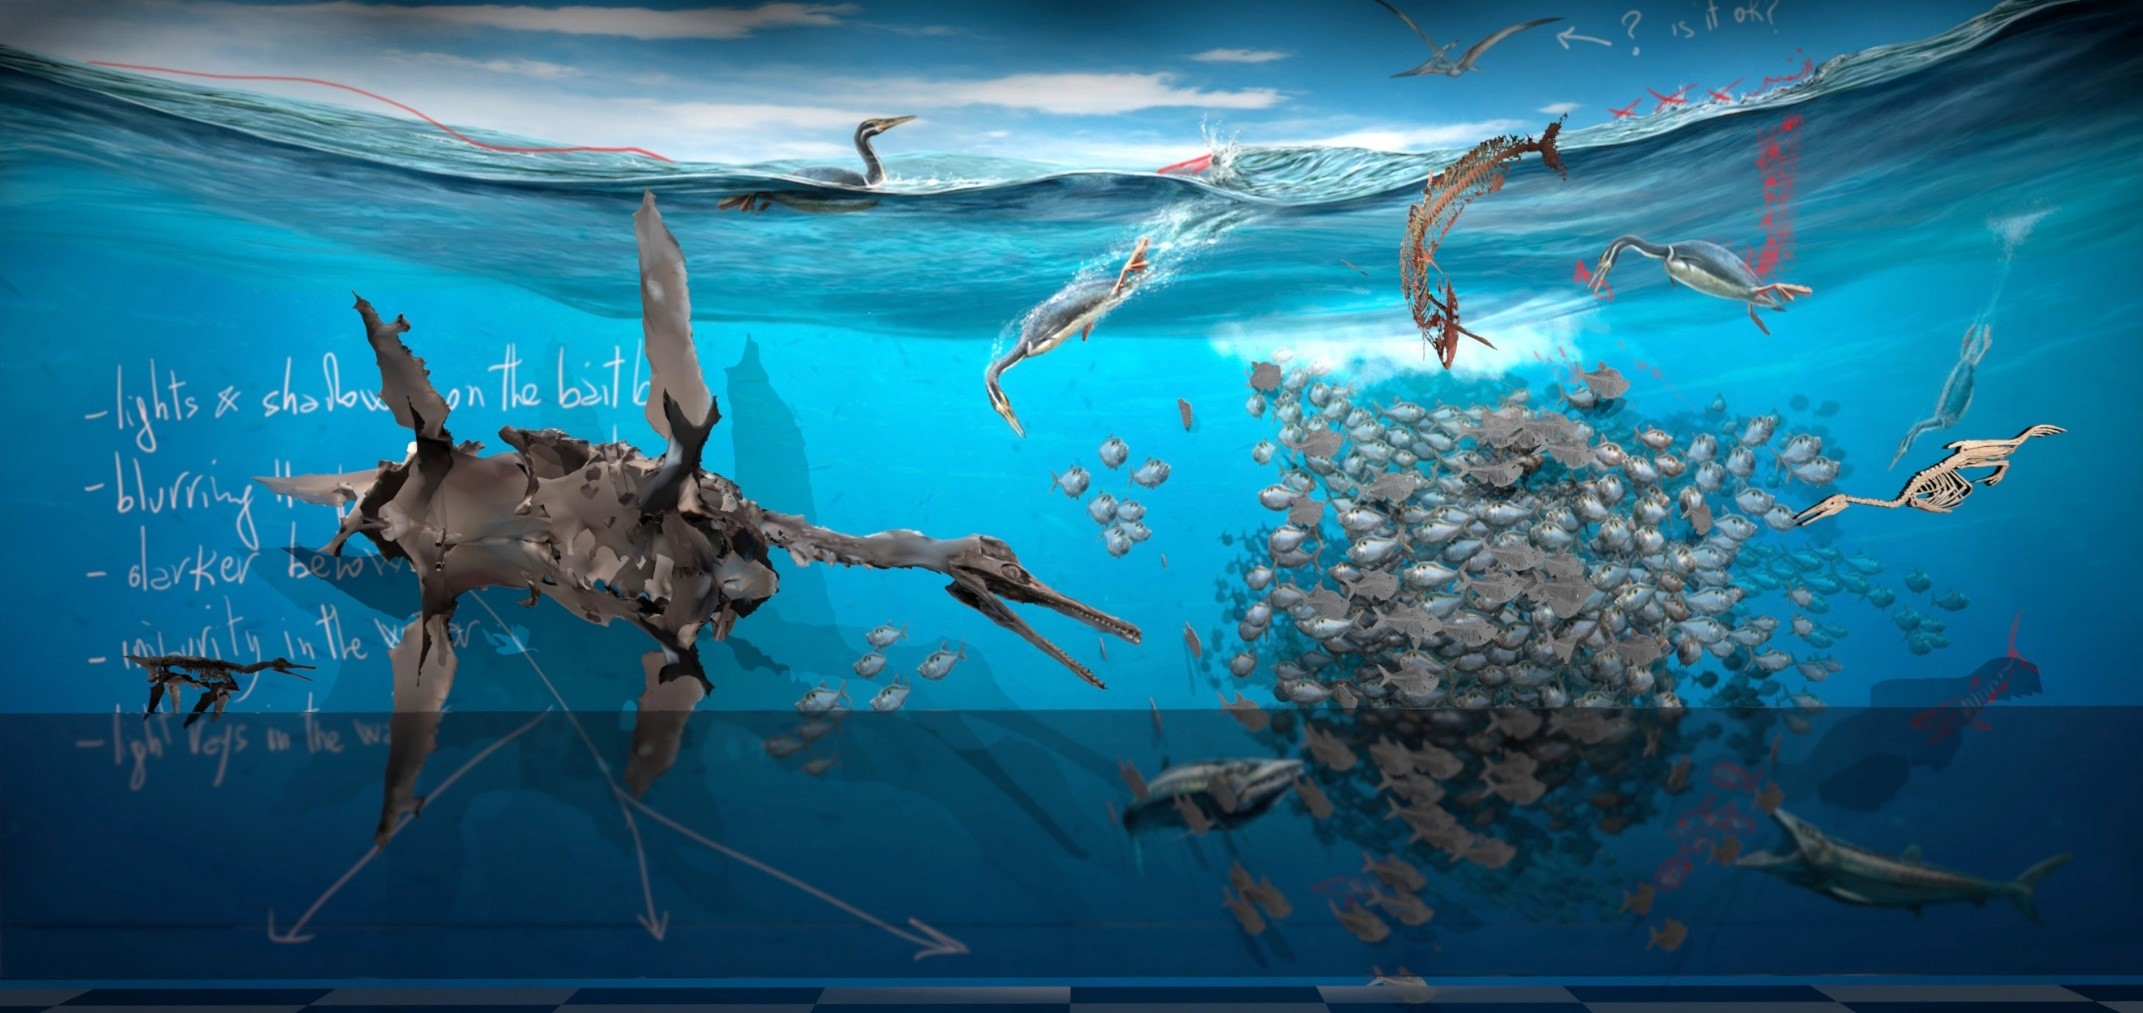 A rendering of an underwater diorama showing a large creature attacking a school of fish